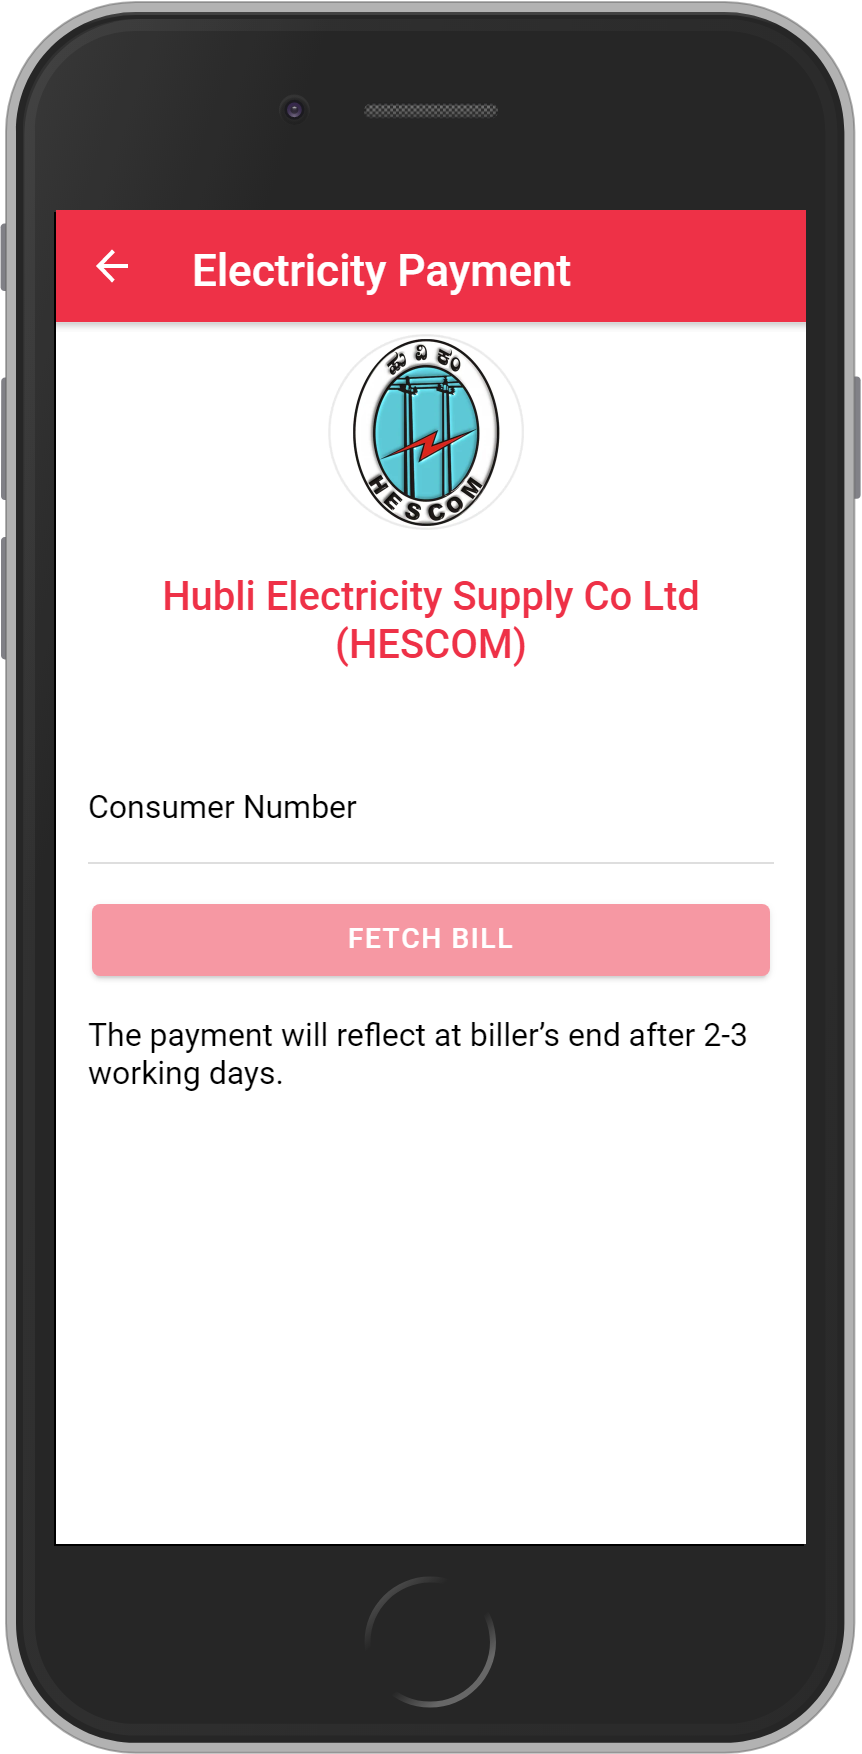 Get UNLIMITED <b>0.1%</b> CASHBACK on Hubli Electricity Supply Co Ltd (HESCOM) Bill Payment.